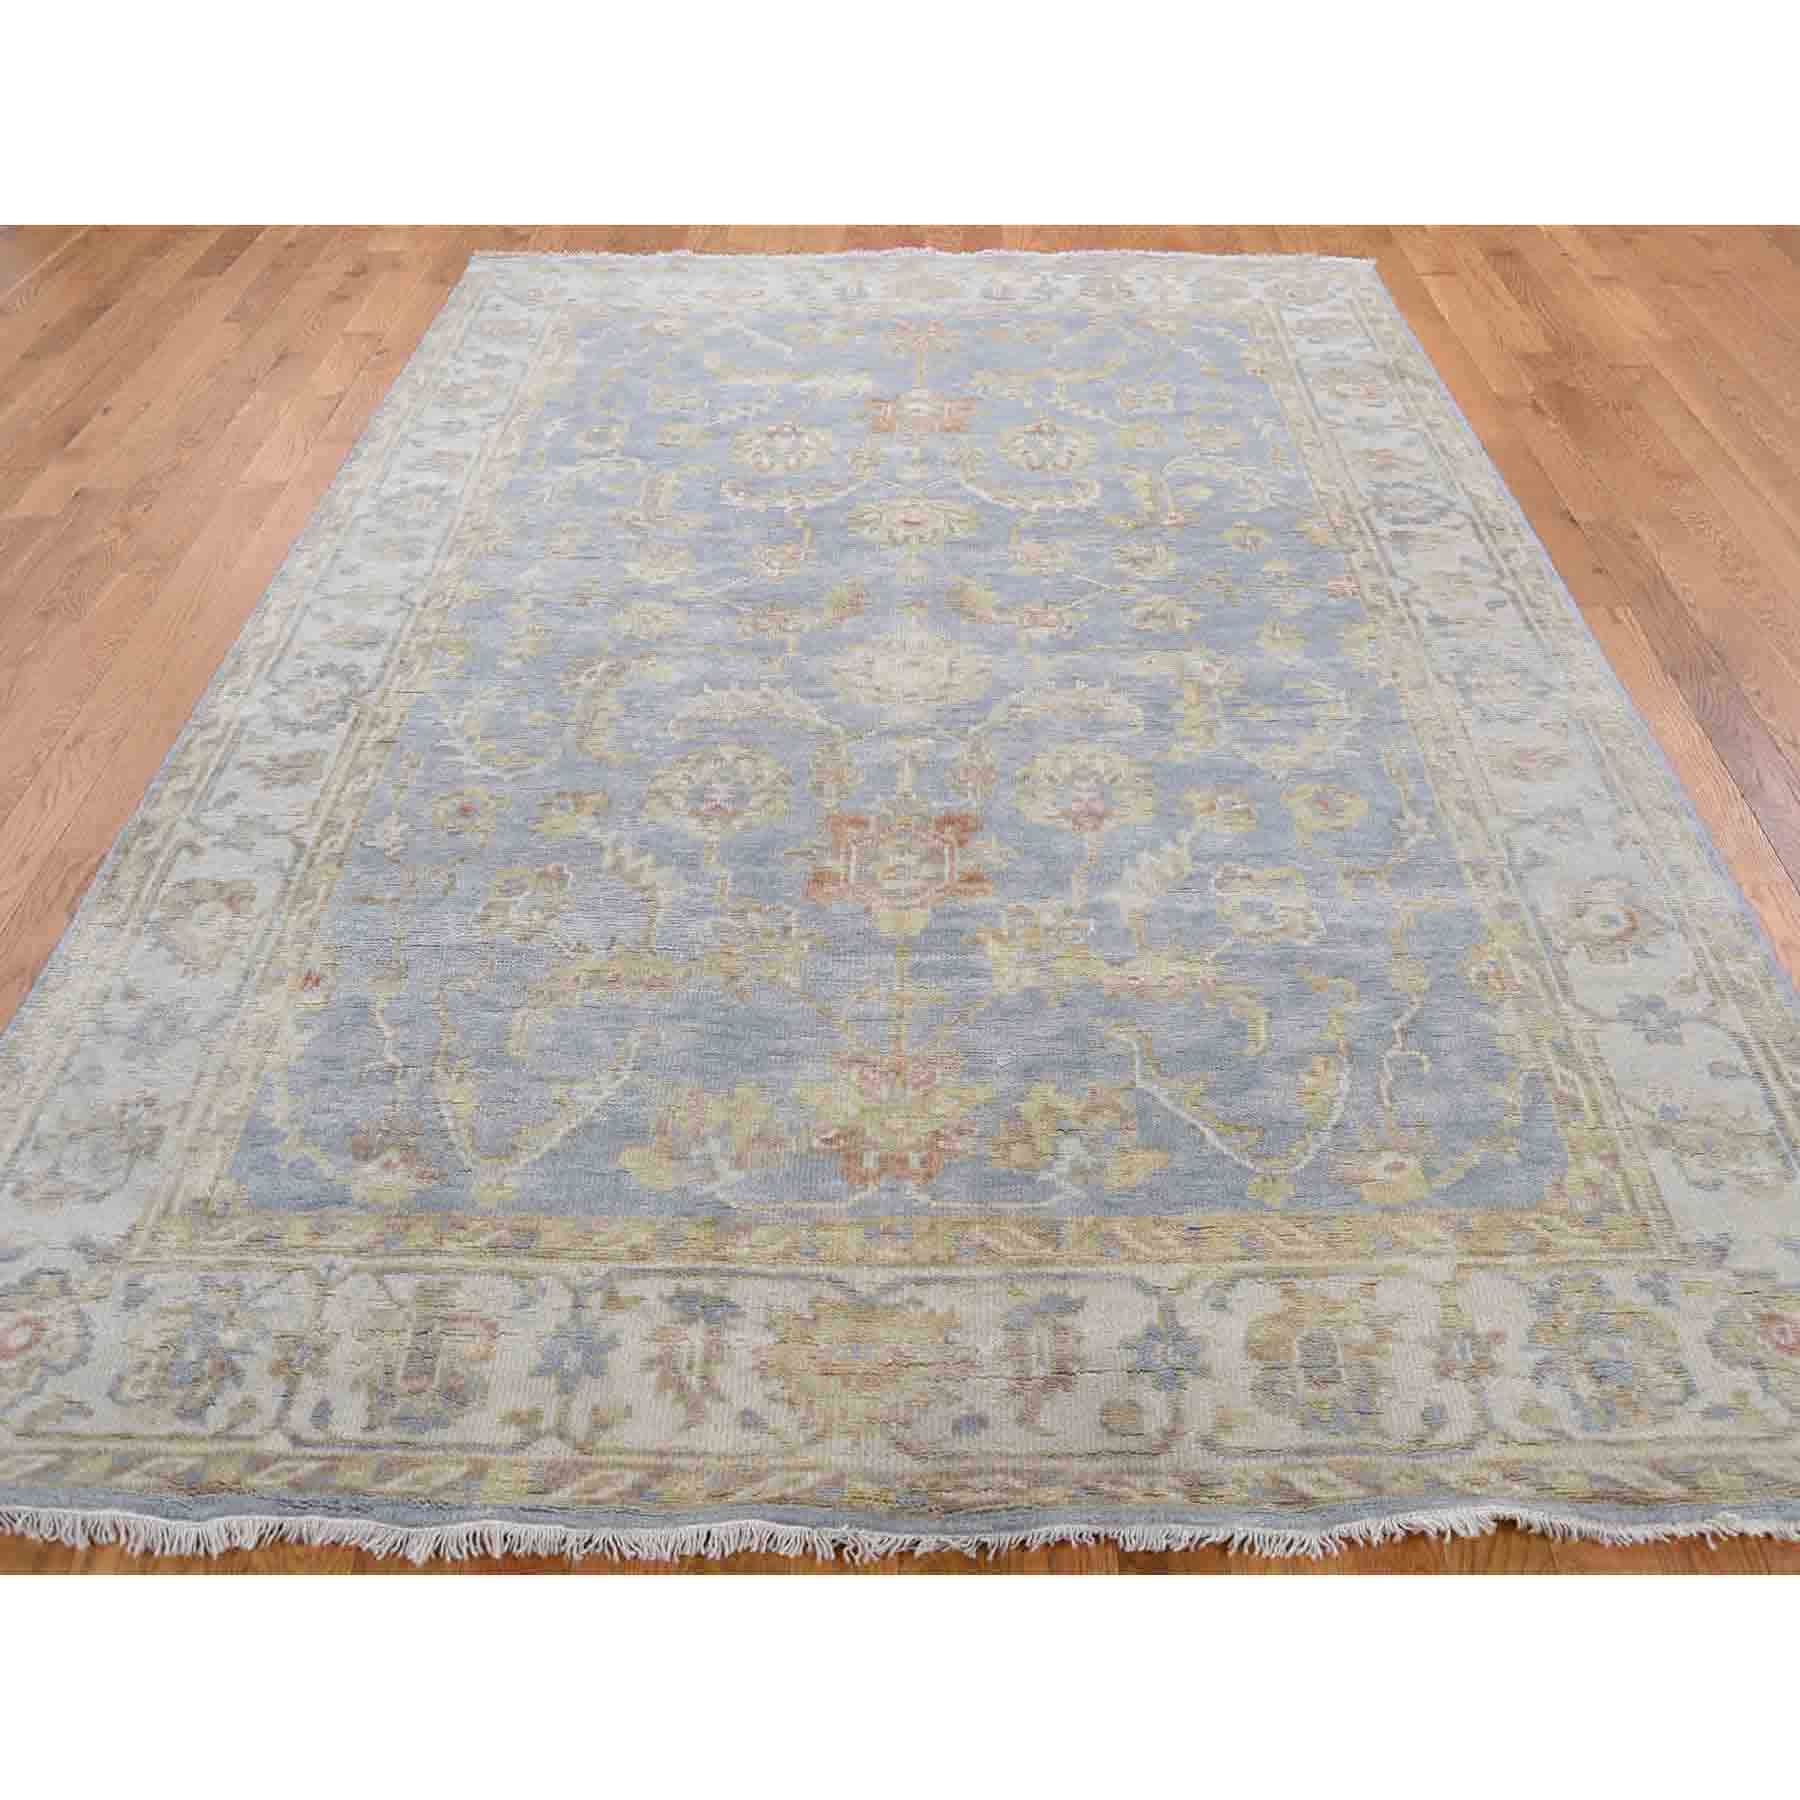 Oushak-And-Peshawar-Hand-Knotted-Rug-207250